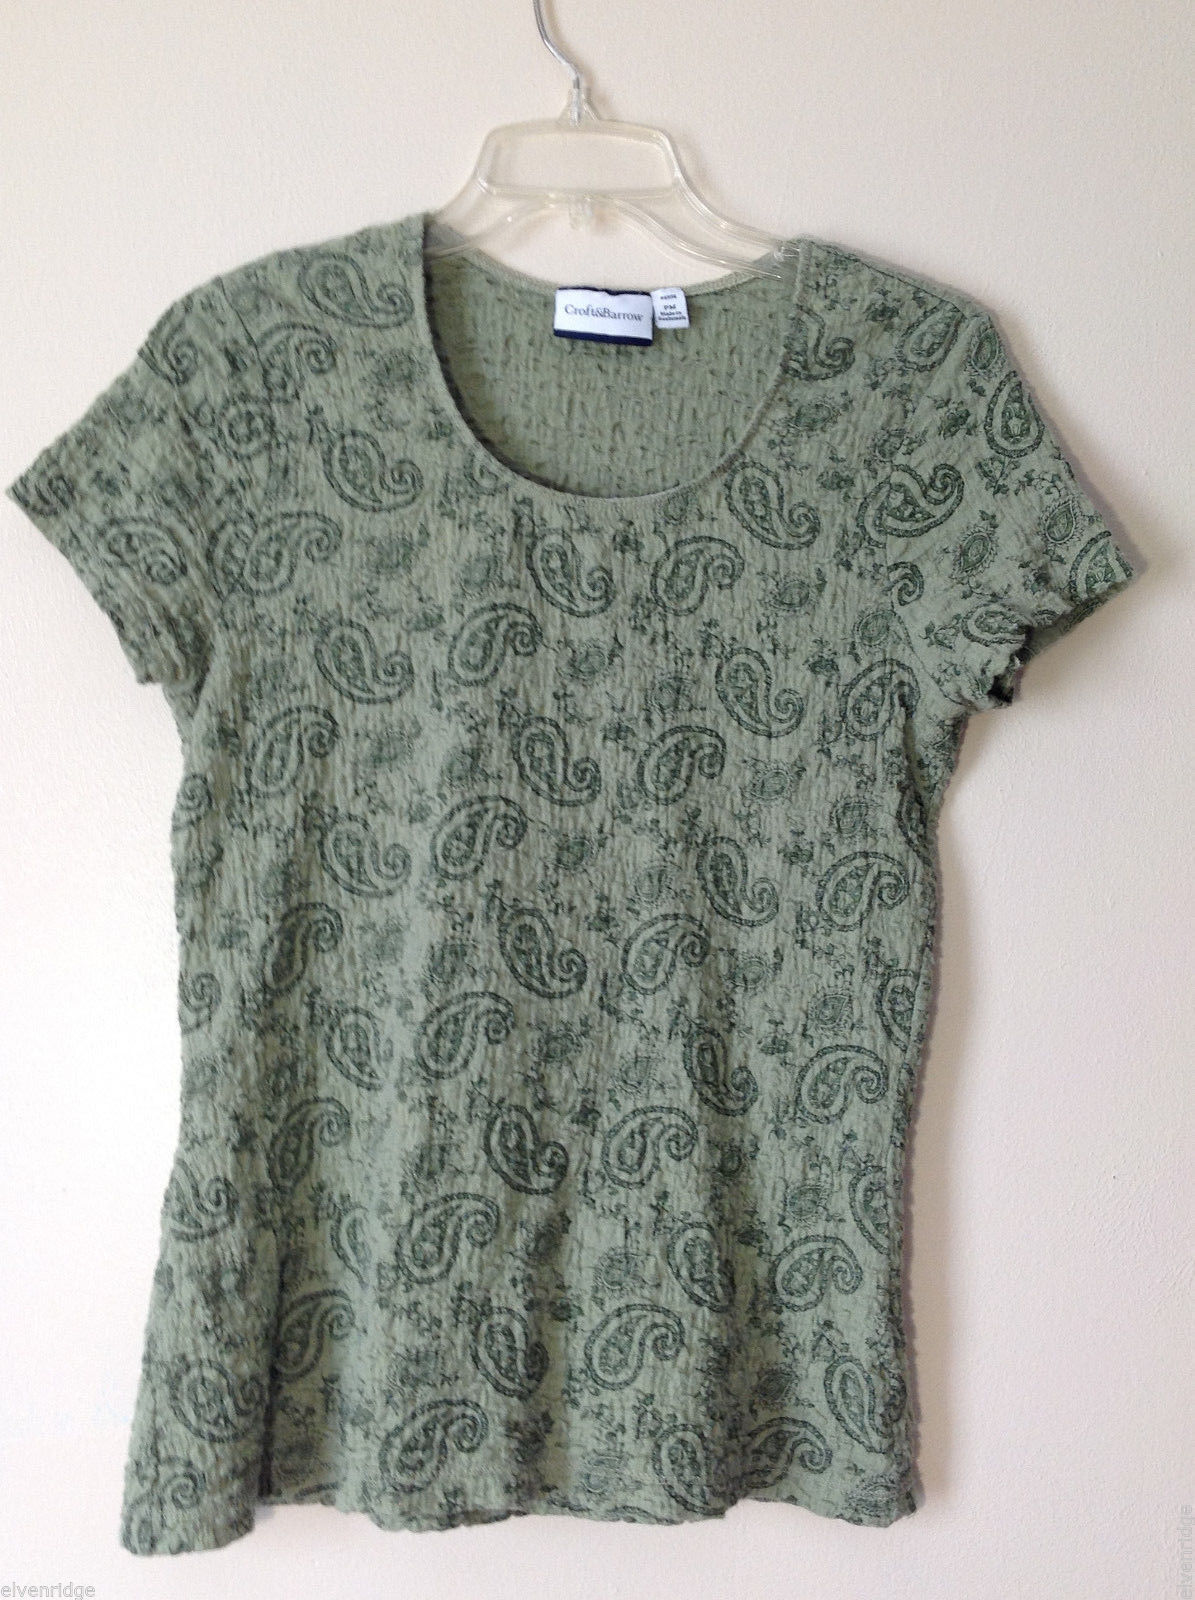 Croft & Barrow Womens' Size M MP Petite Sage Green Paisley Cap Sleeve Shirt Top